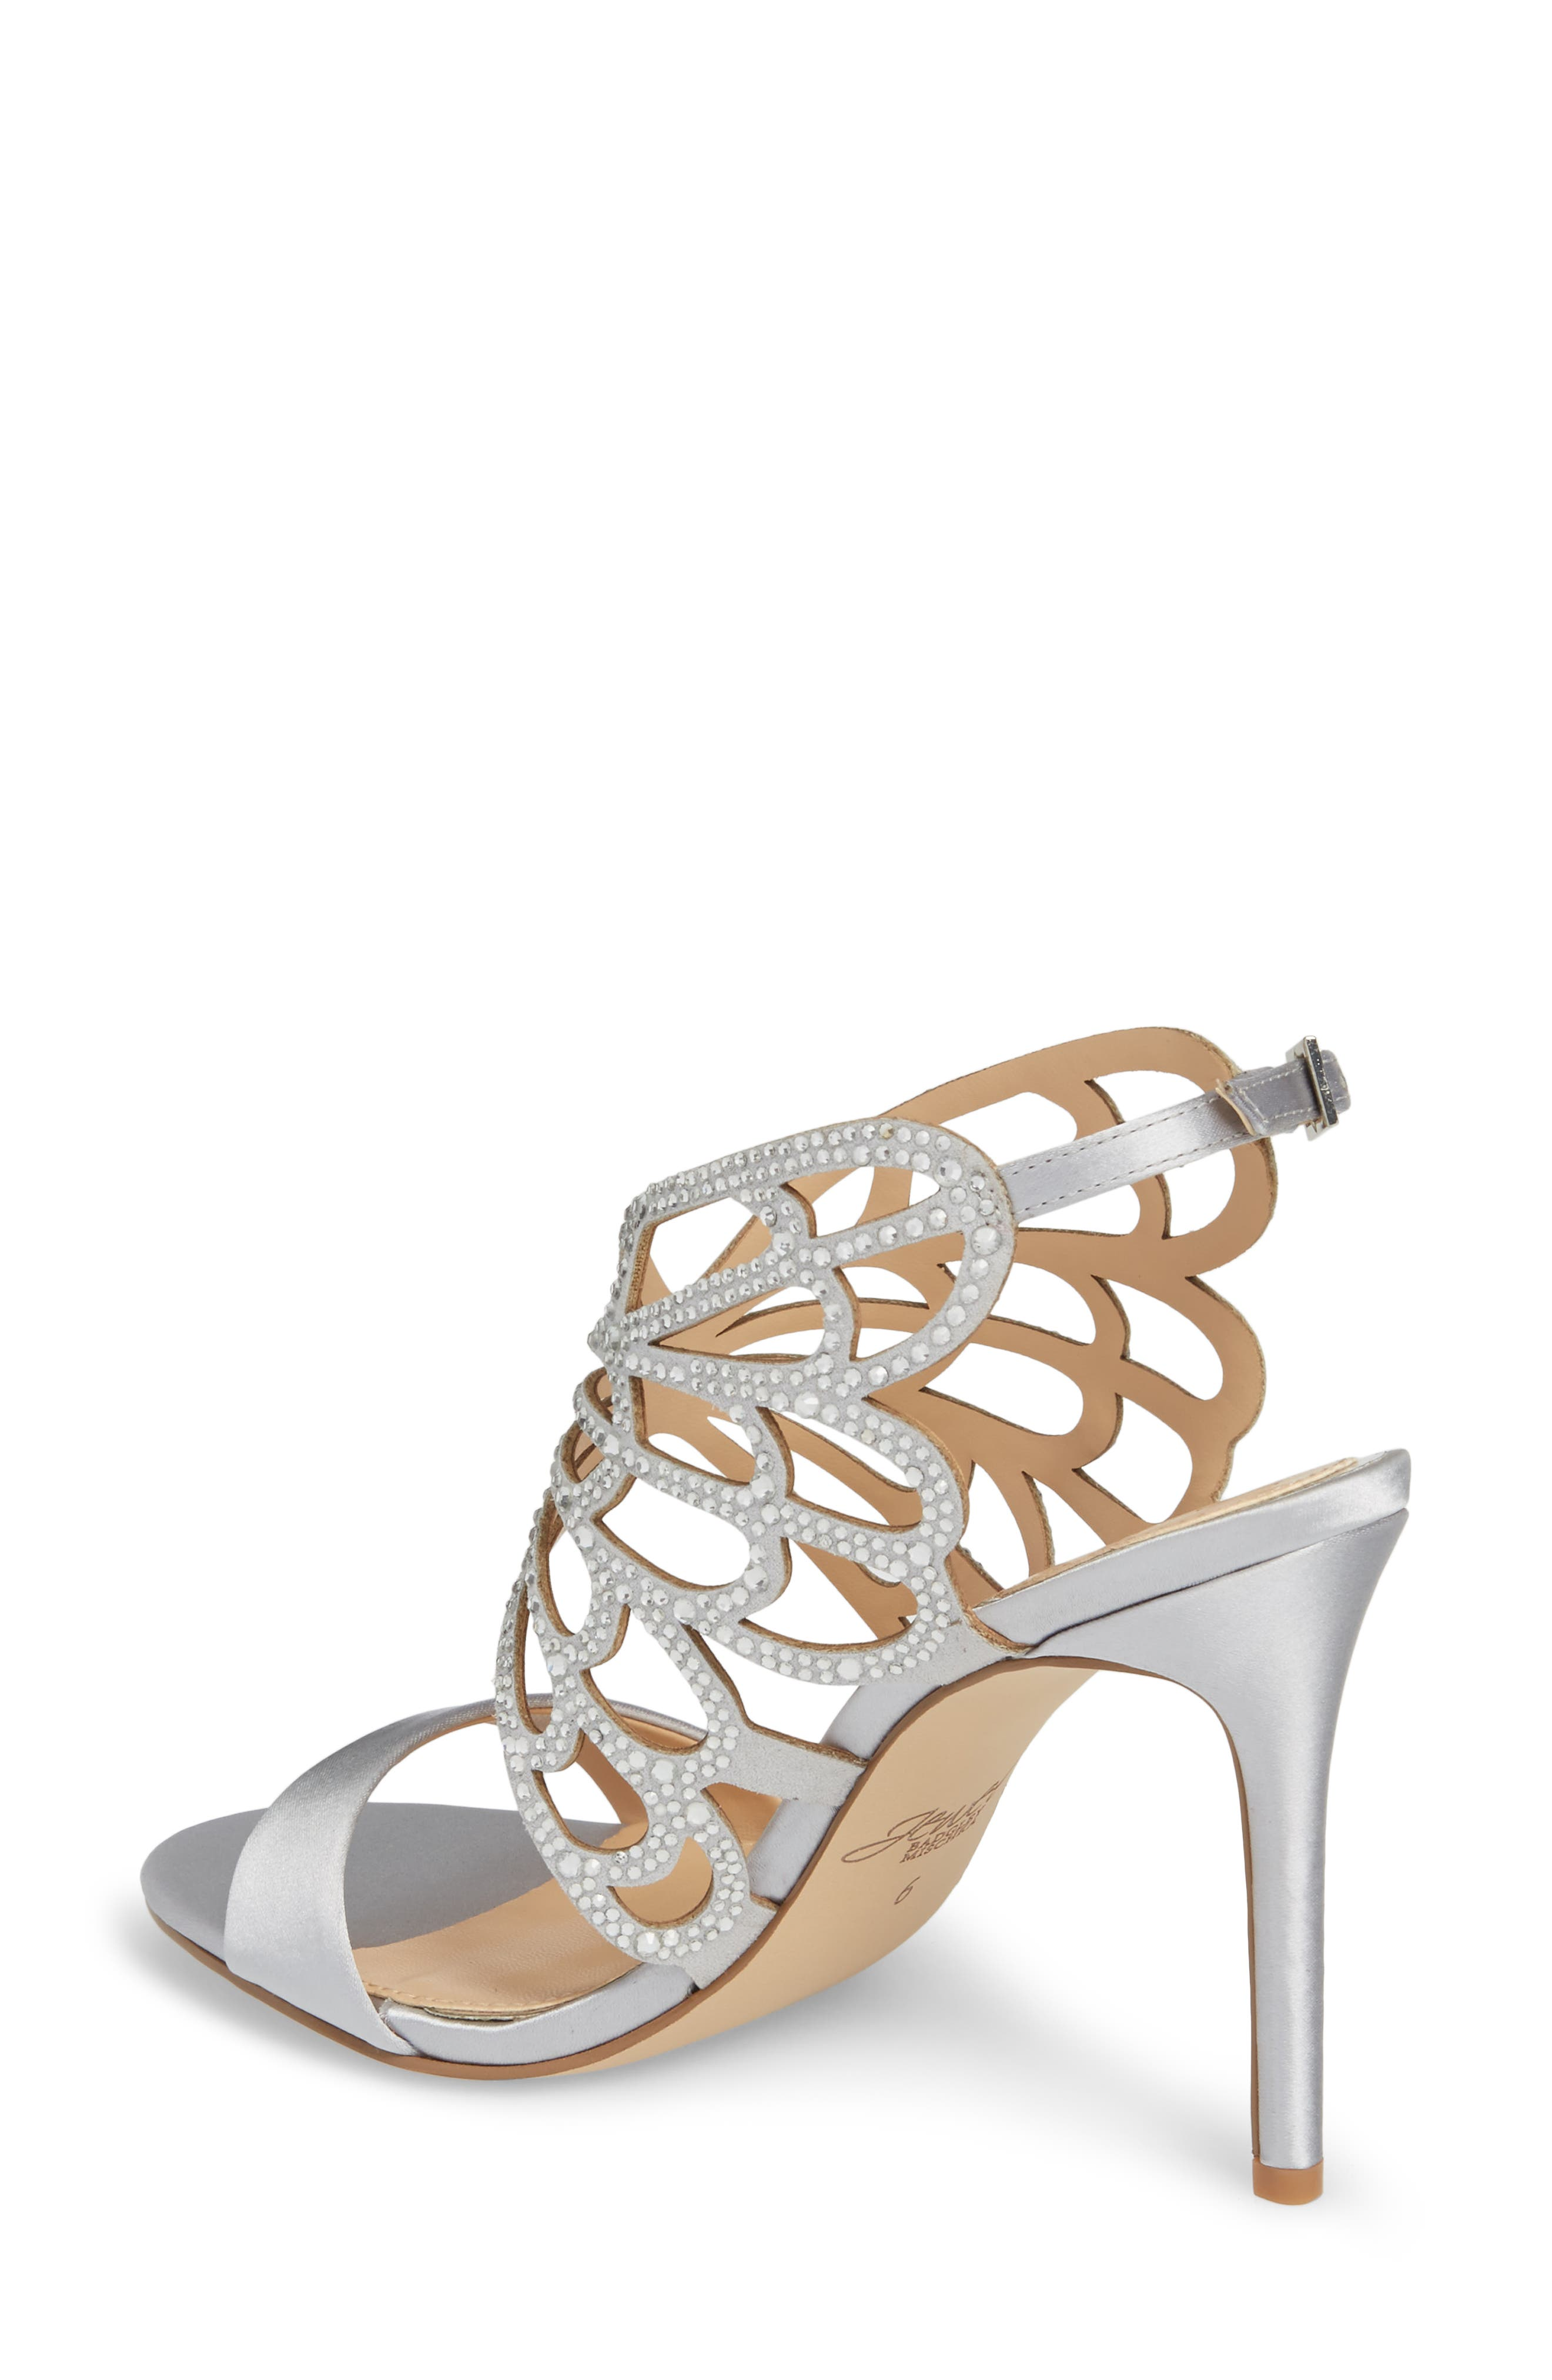 Taresa Crystal Embellished Butterfly Sandal,                             Alternate thumbnail 2, color,                             Silver Satin